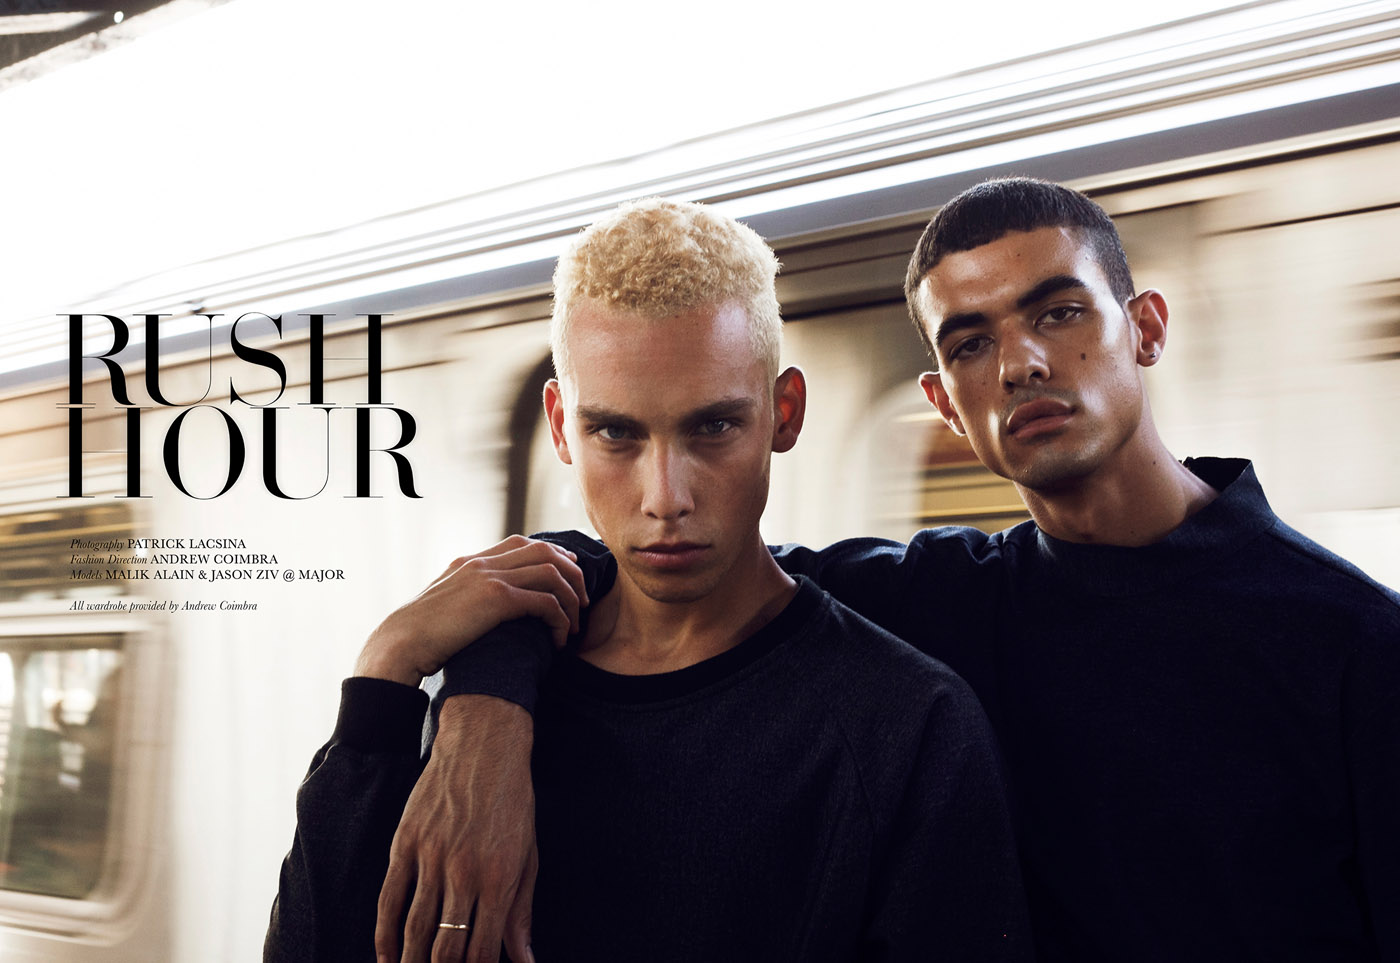 rush-hour-by-patrick-lacsina-for-chasseur-magazine-1